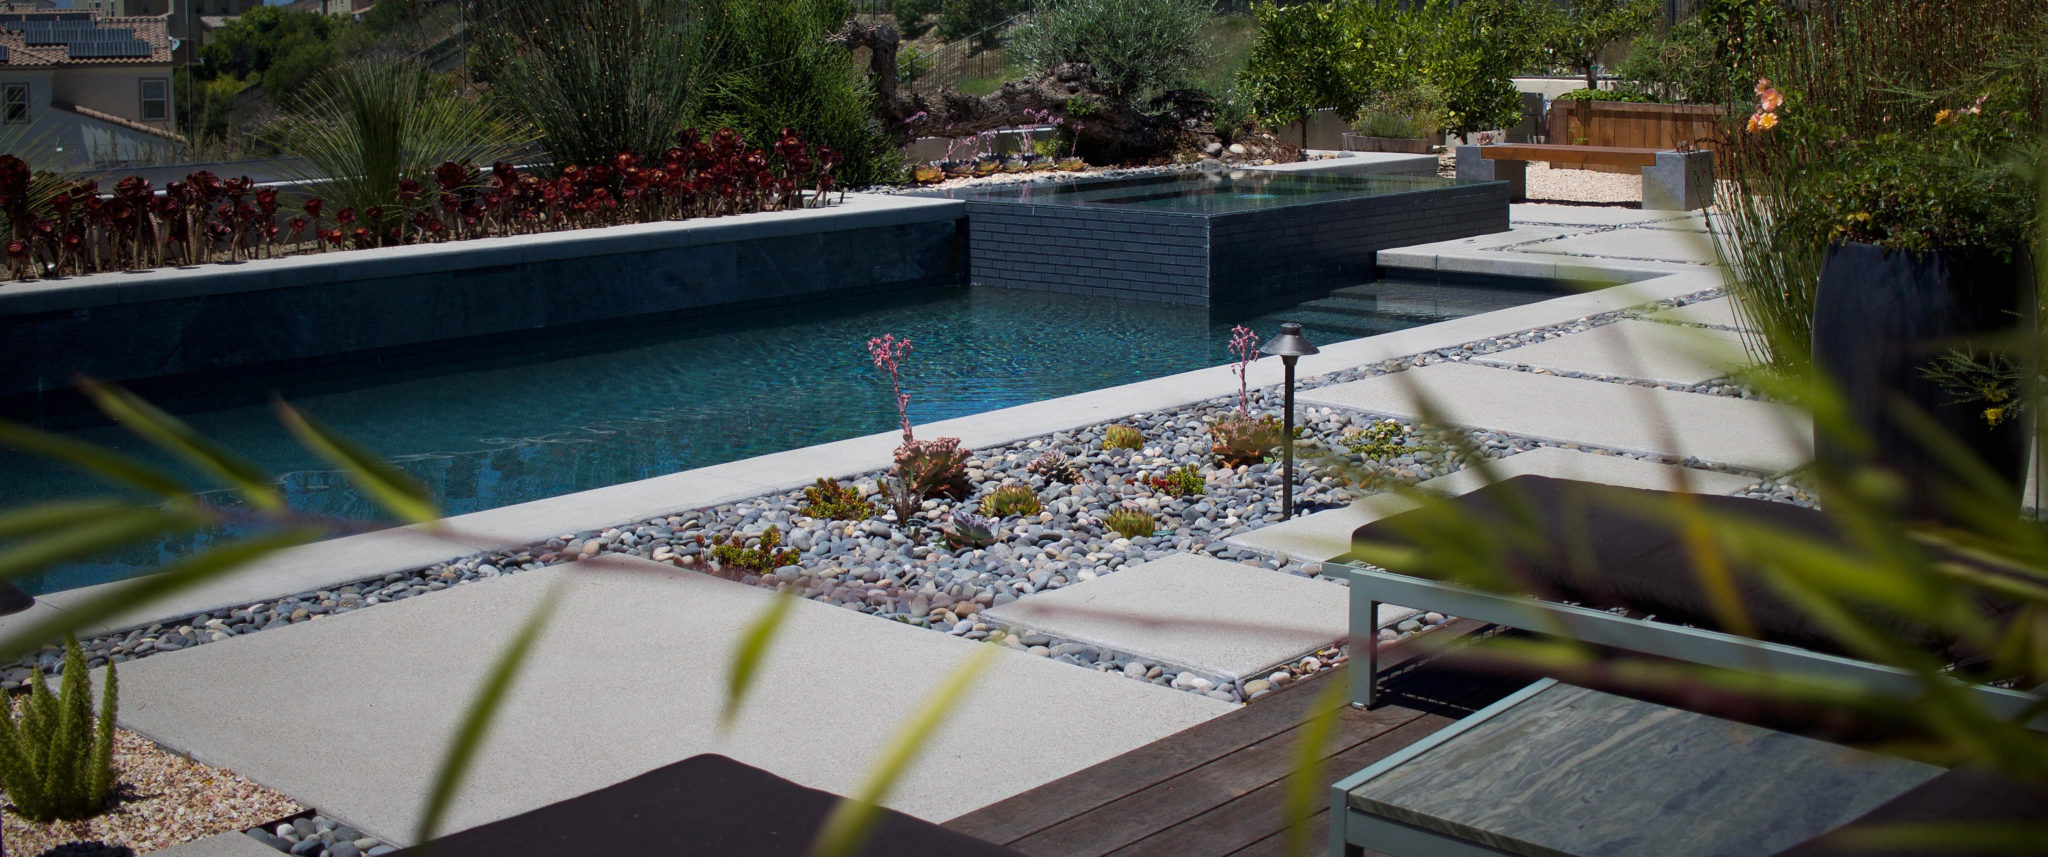 Home Waterworks Pool Concepts